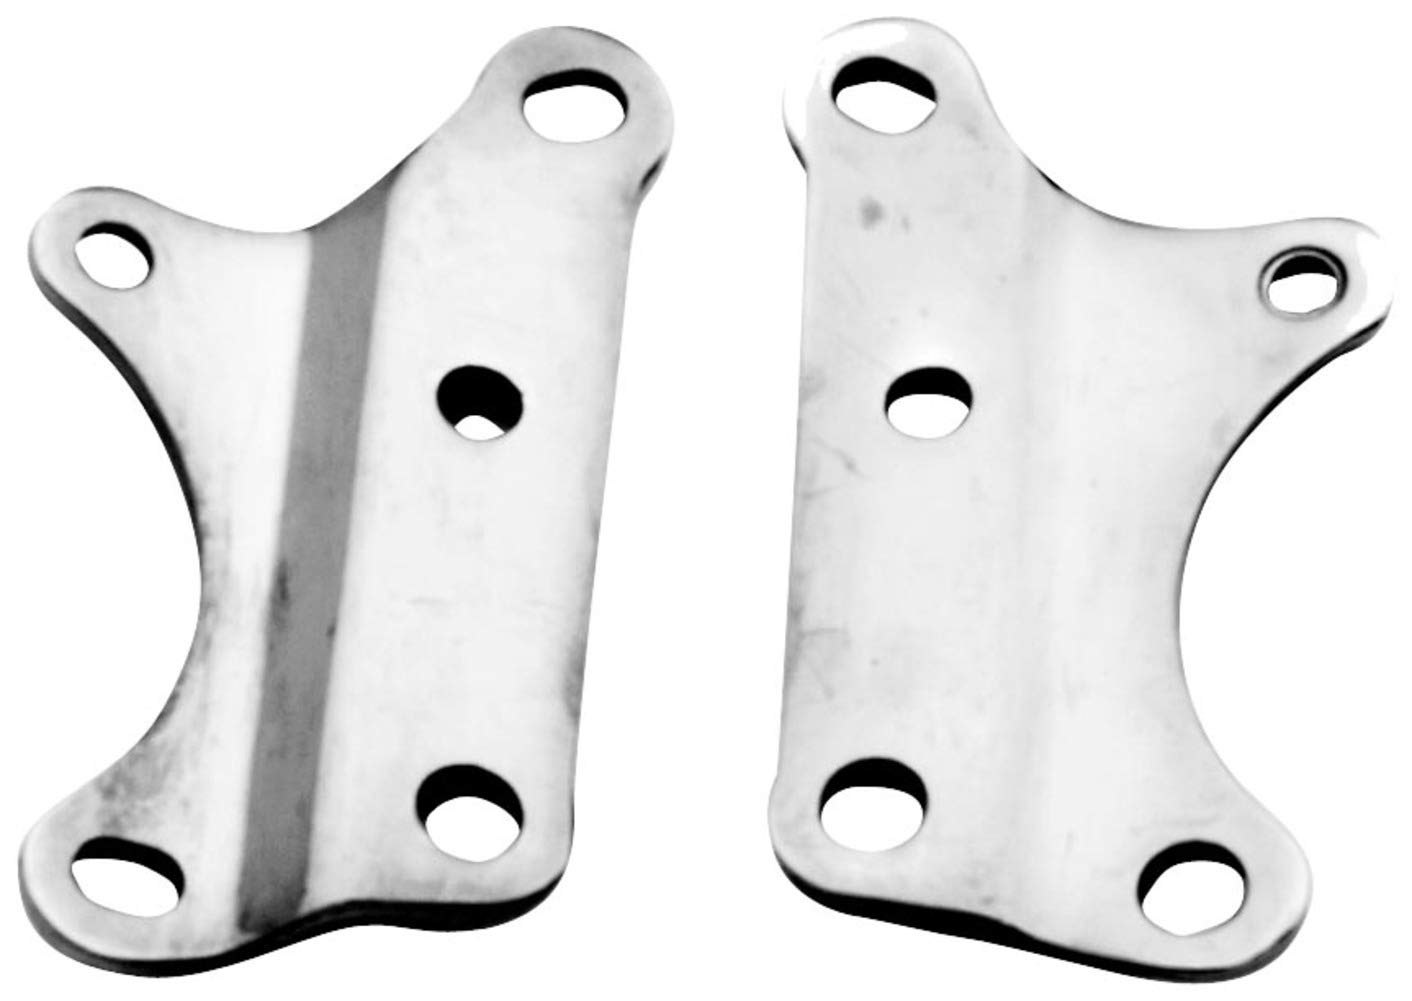 Paughco Lower Front Motor Mount for Harley Davidson 1986-2003 Evolution Sportst by Paughco